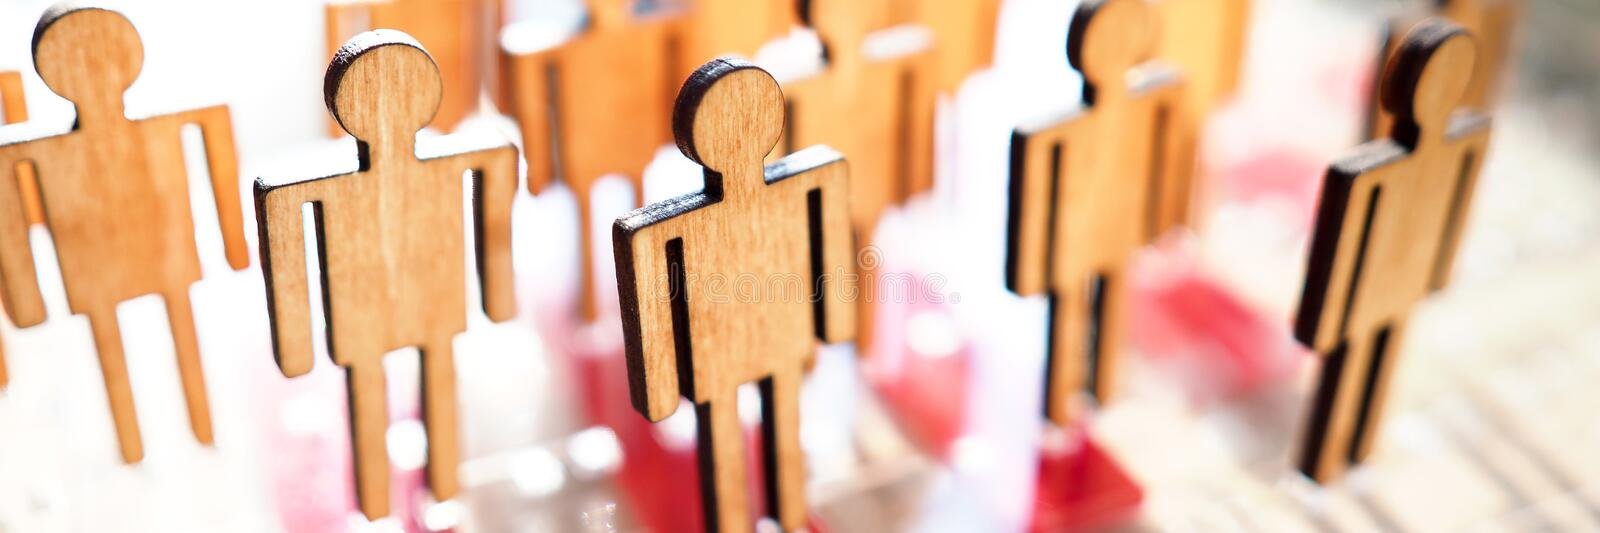 Little wooden toy people figures stand in row. Closeup. Teambuild hr poll net elector politics crowdfunding relationship labour talent public opinion concept royalty free stock images